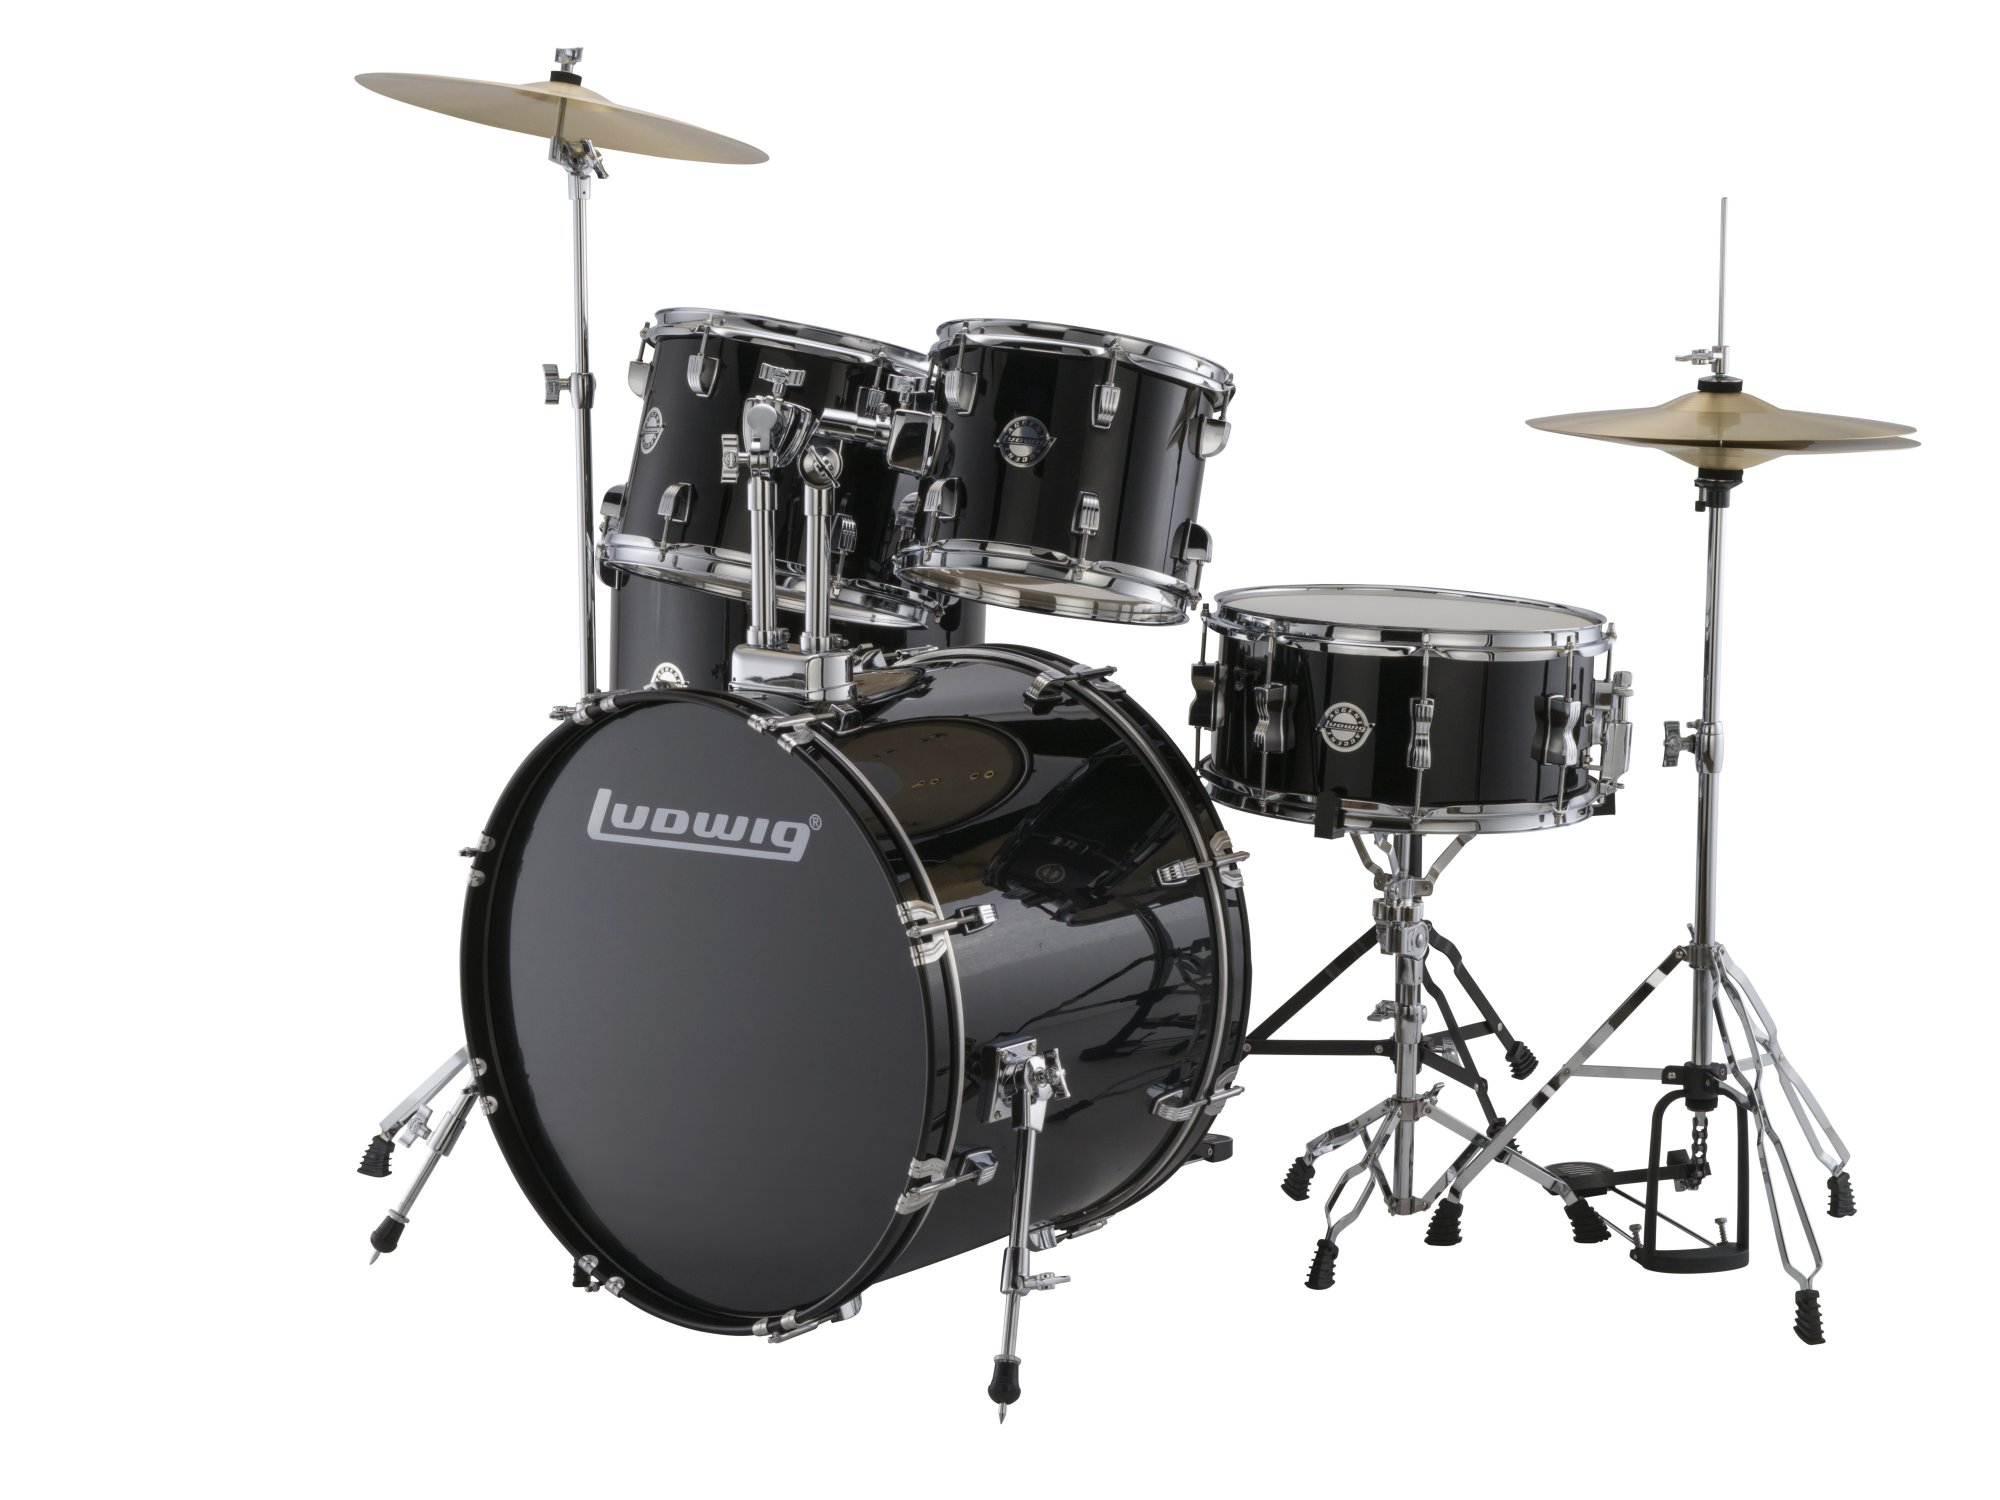 Ludwig Accent Drive Complete 5 Pc. Kit 22 inch Kick